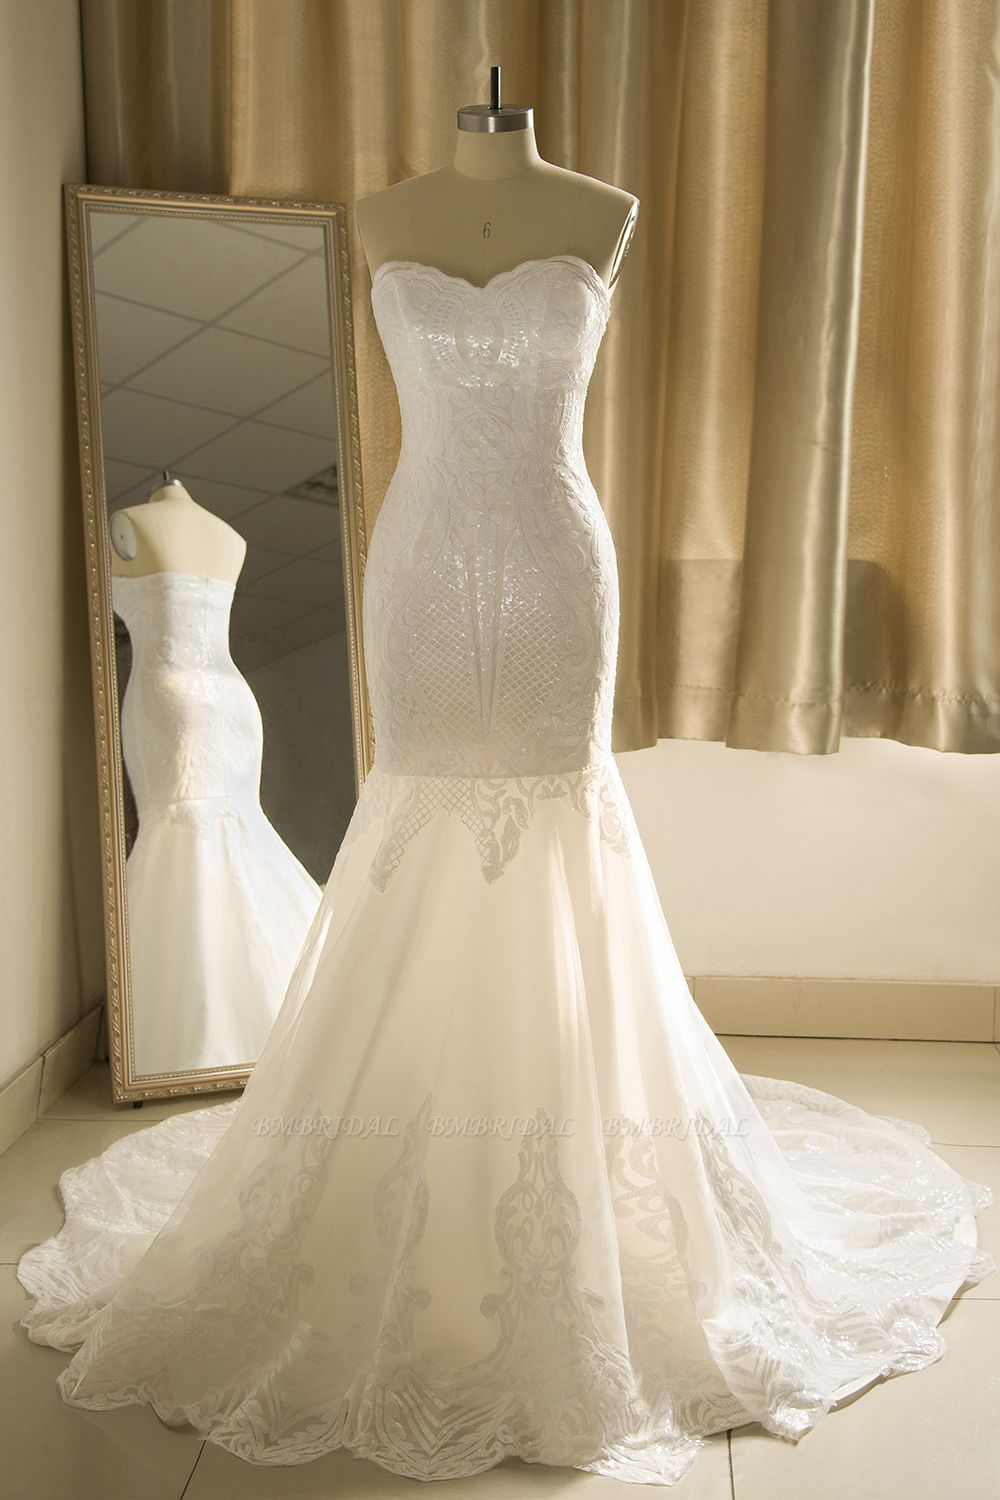 Chic Strapless Sweetheart Ivory Mermaid Prom Dresses Sleeveless Appliques Sequined Evening Dresses On Sale